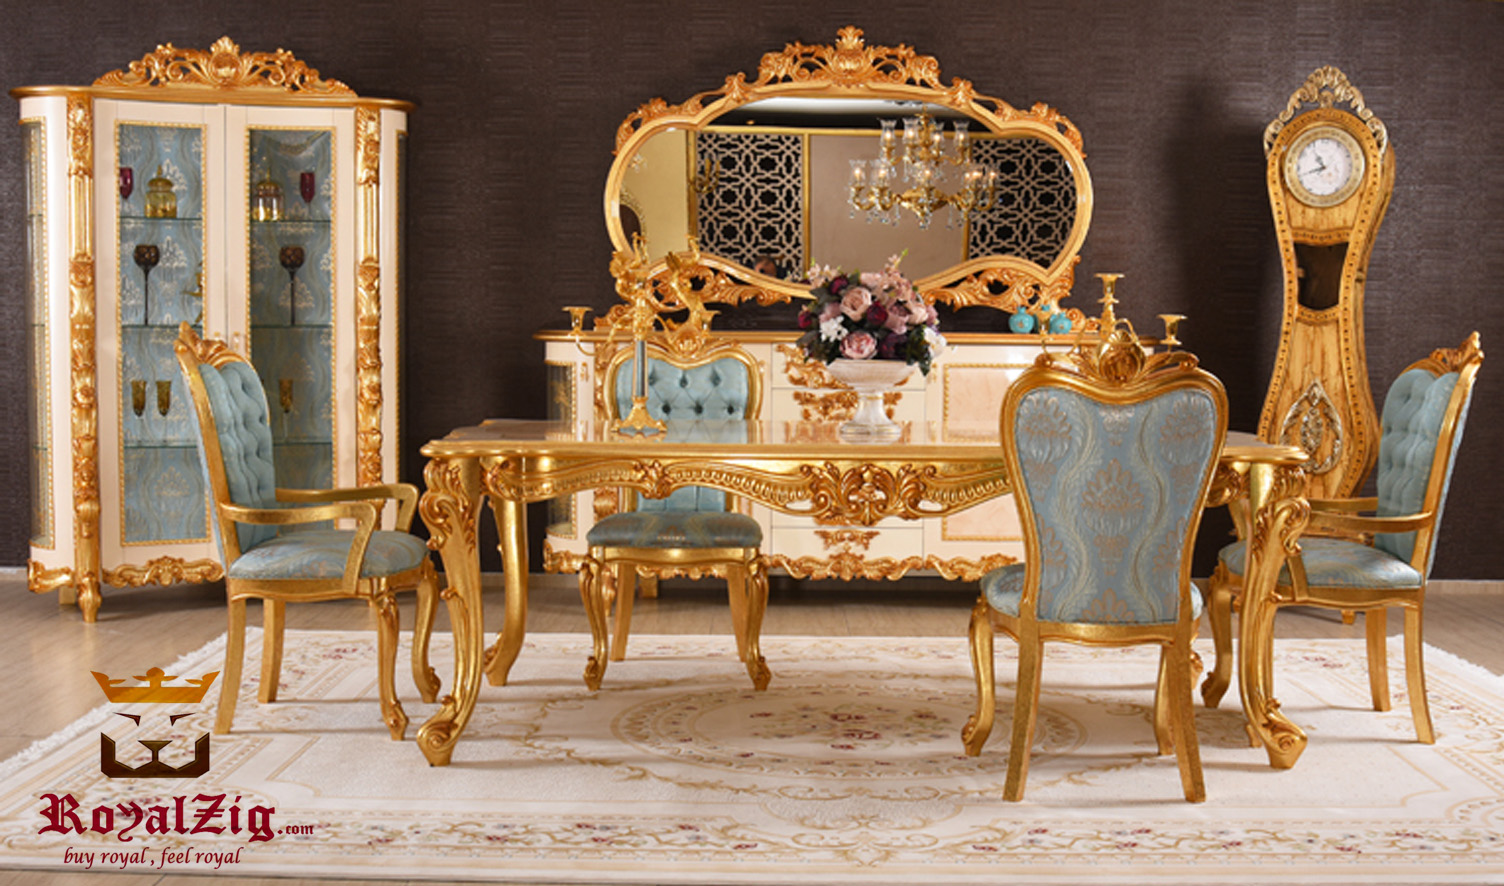 Imitation Gold Royalzig Italian Style Dining Set Online in India